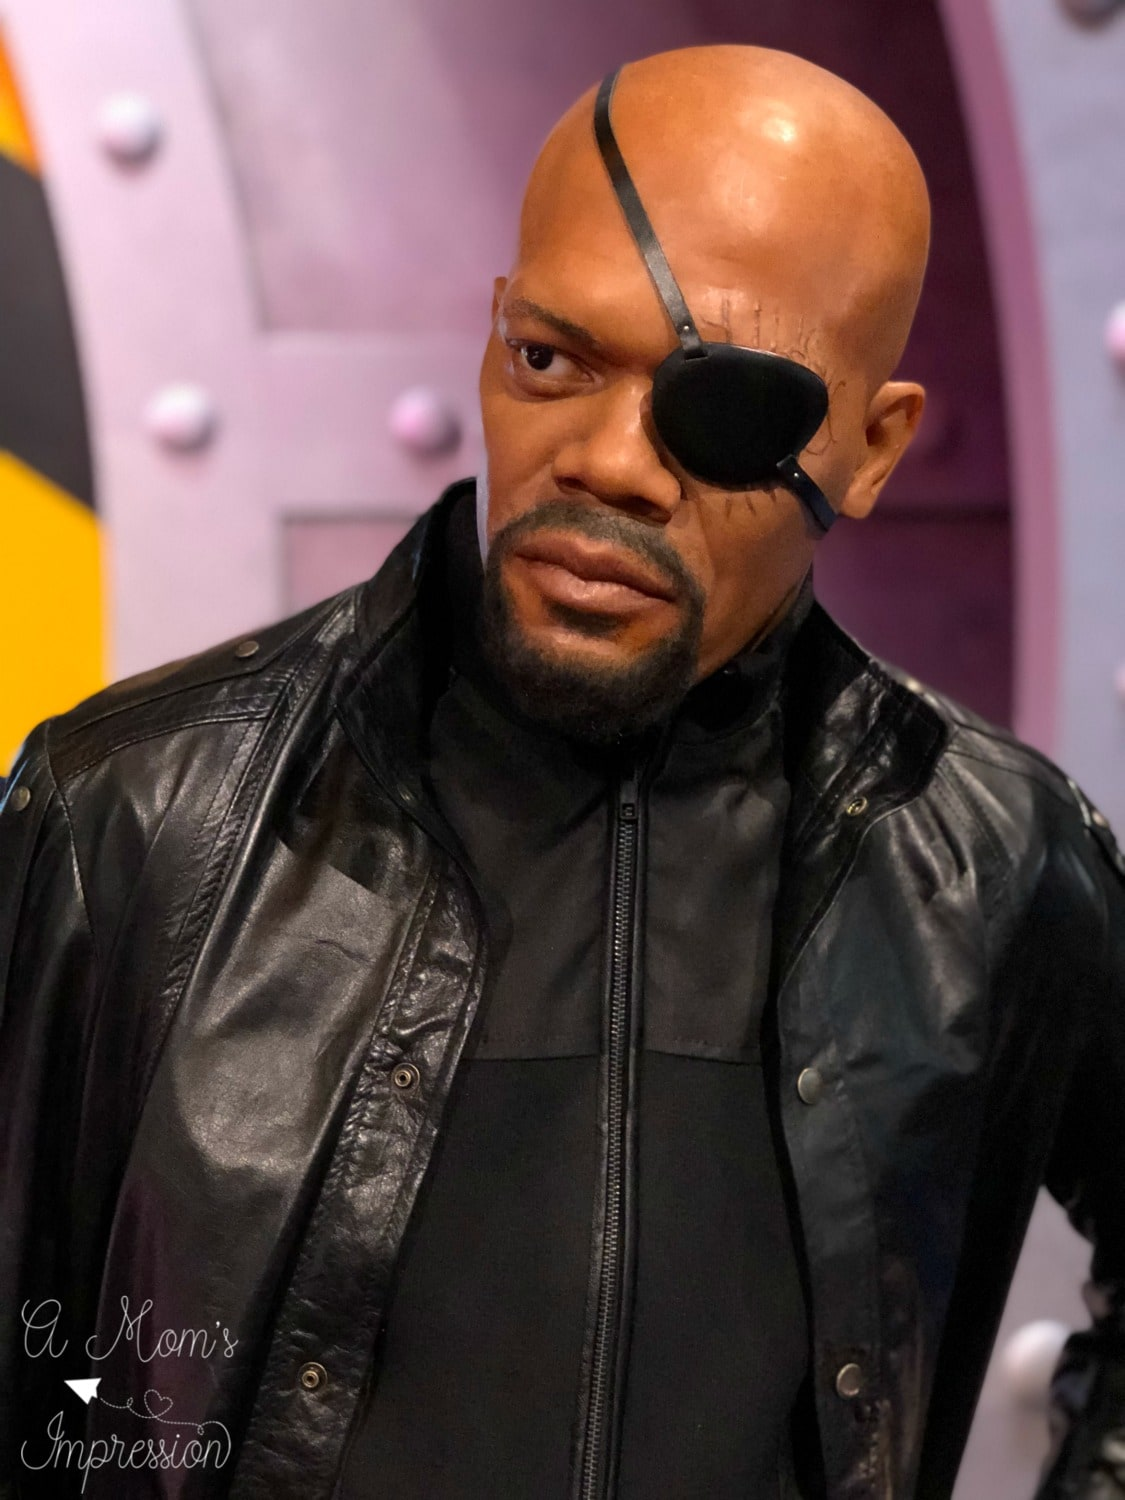 Nick Fury Wax Figure